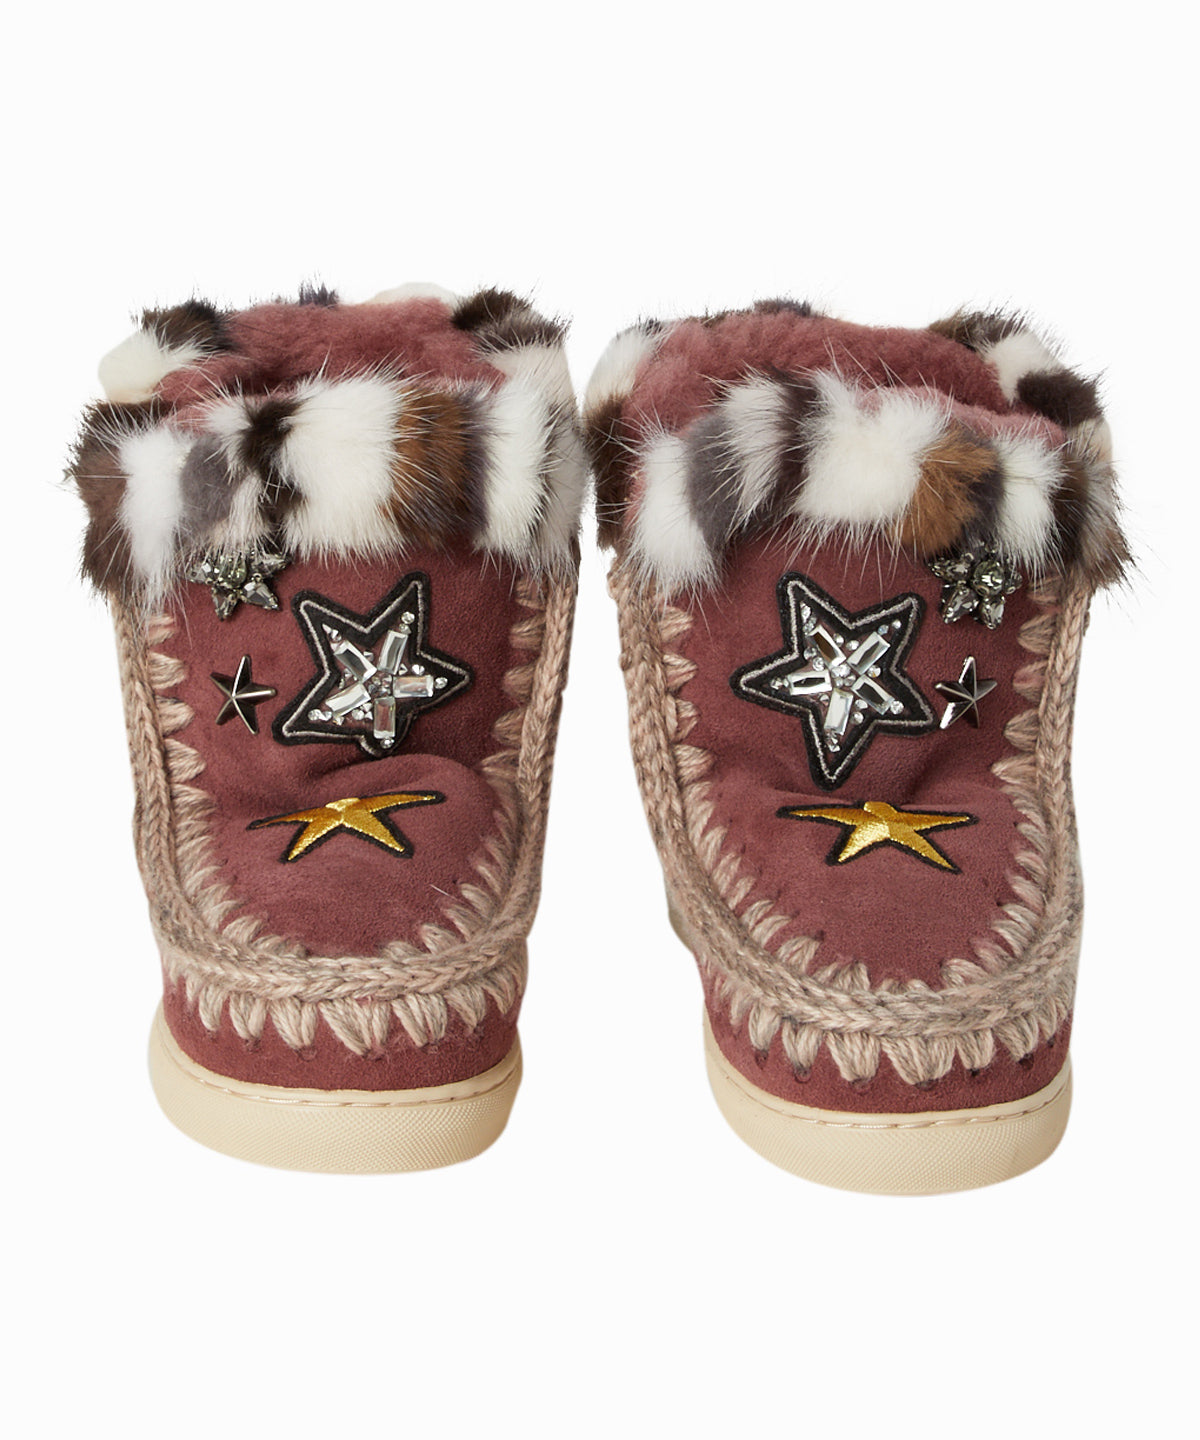 Mink Fur and Star Patches Sherpa Boots